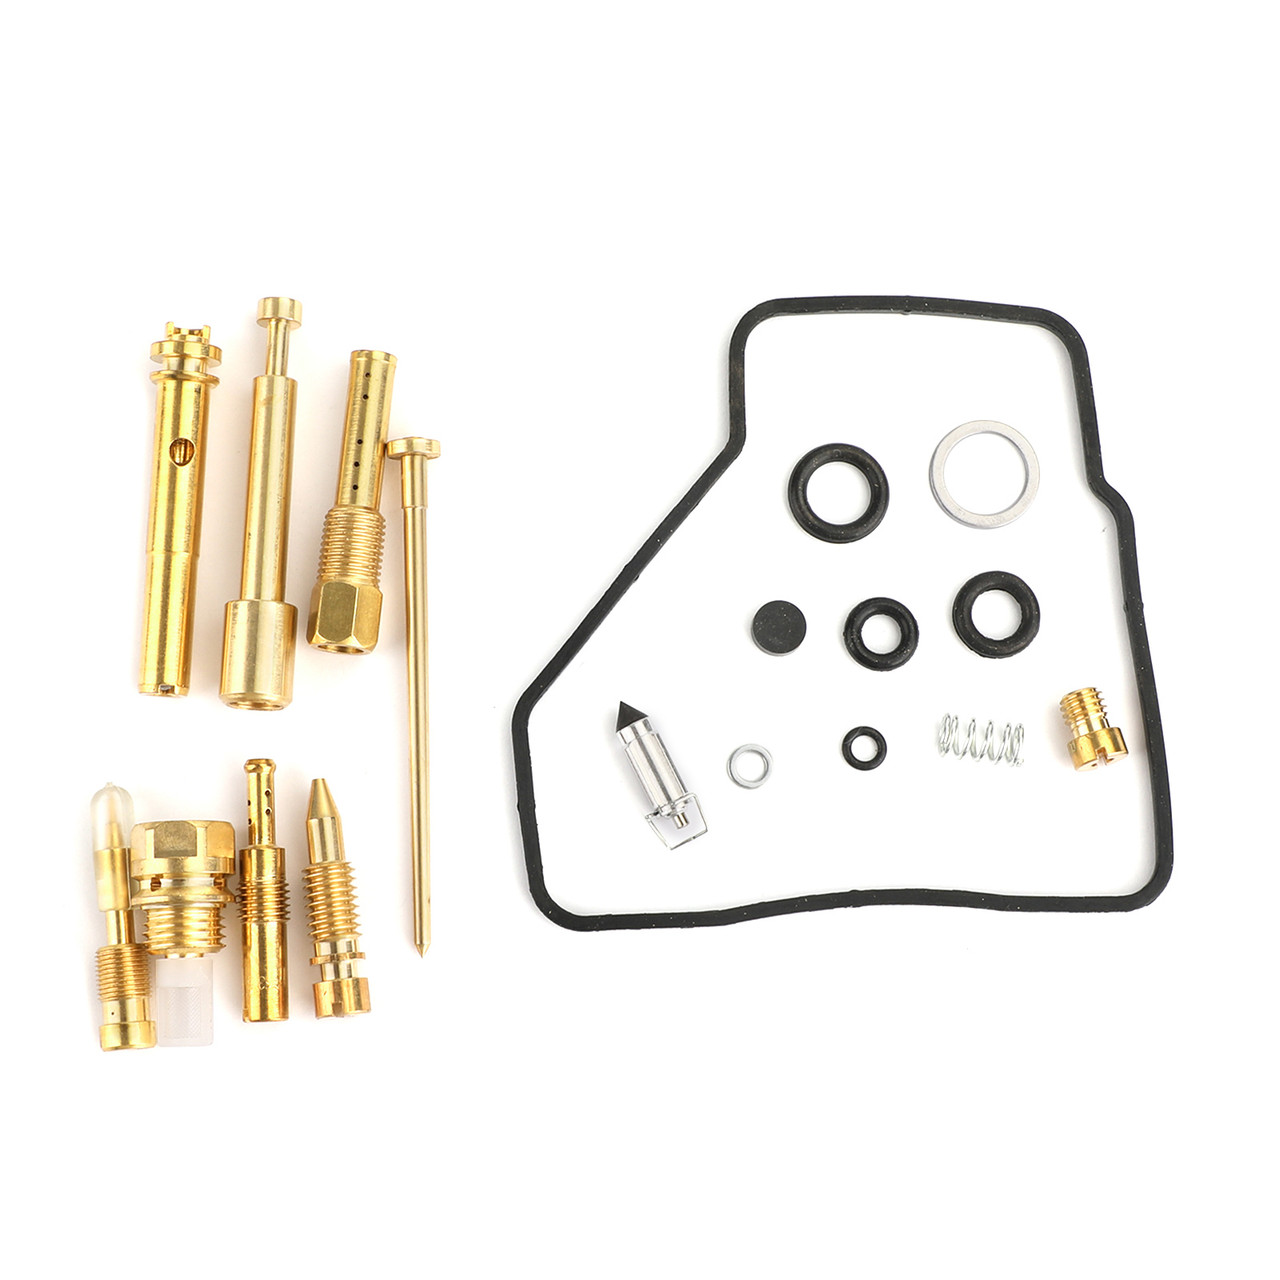 4pcs Carburetor Carb Repair Rebuild Kit for Honda VFR400R NC30